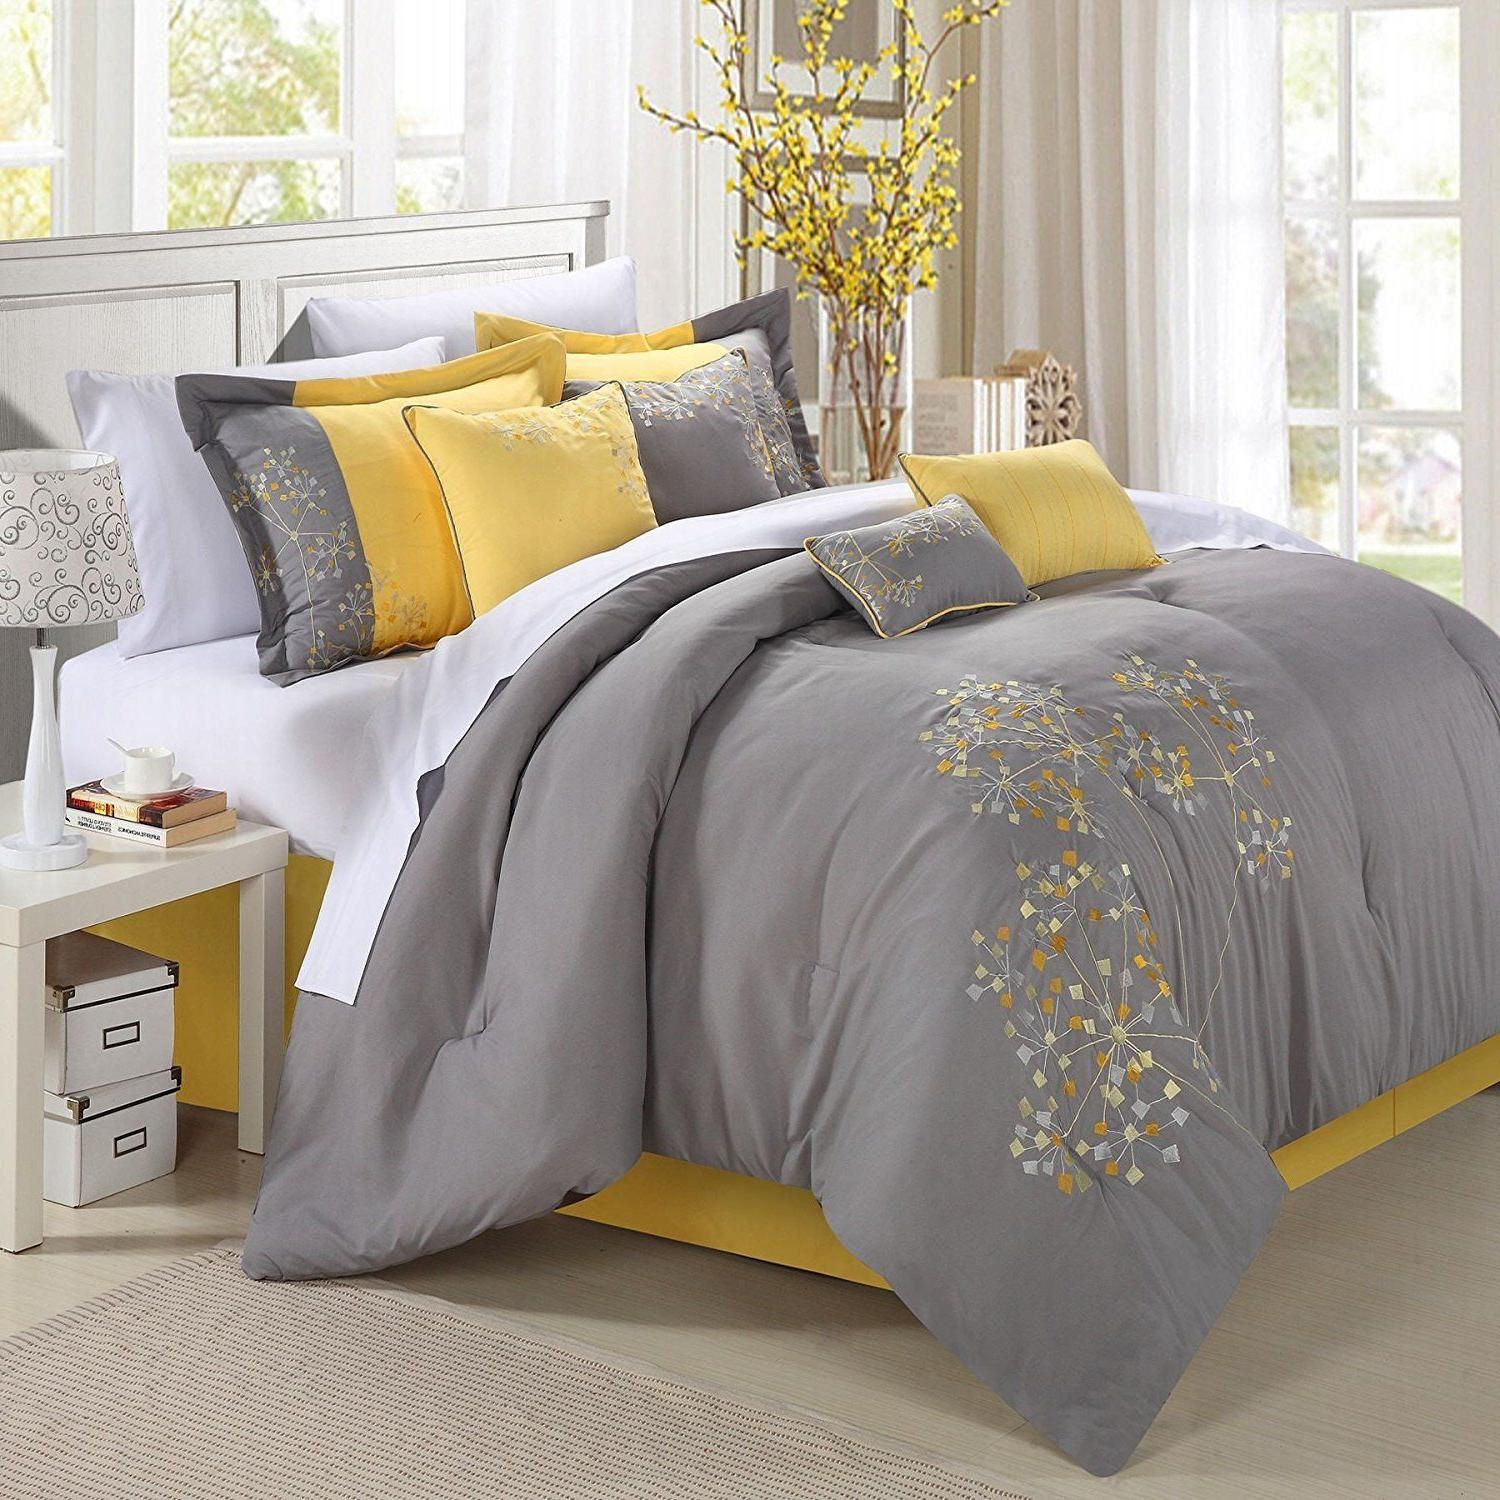 chic home 8 piece embroidery comforter set